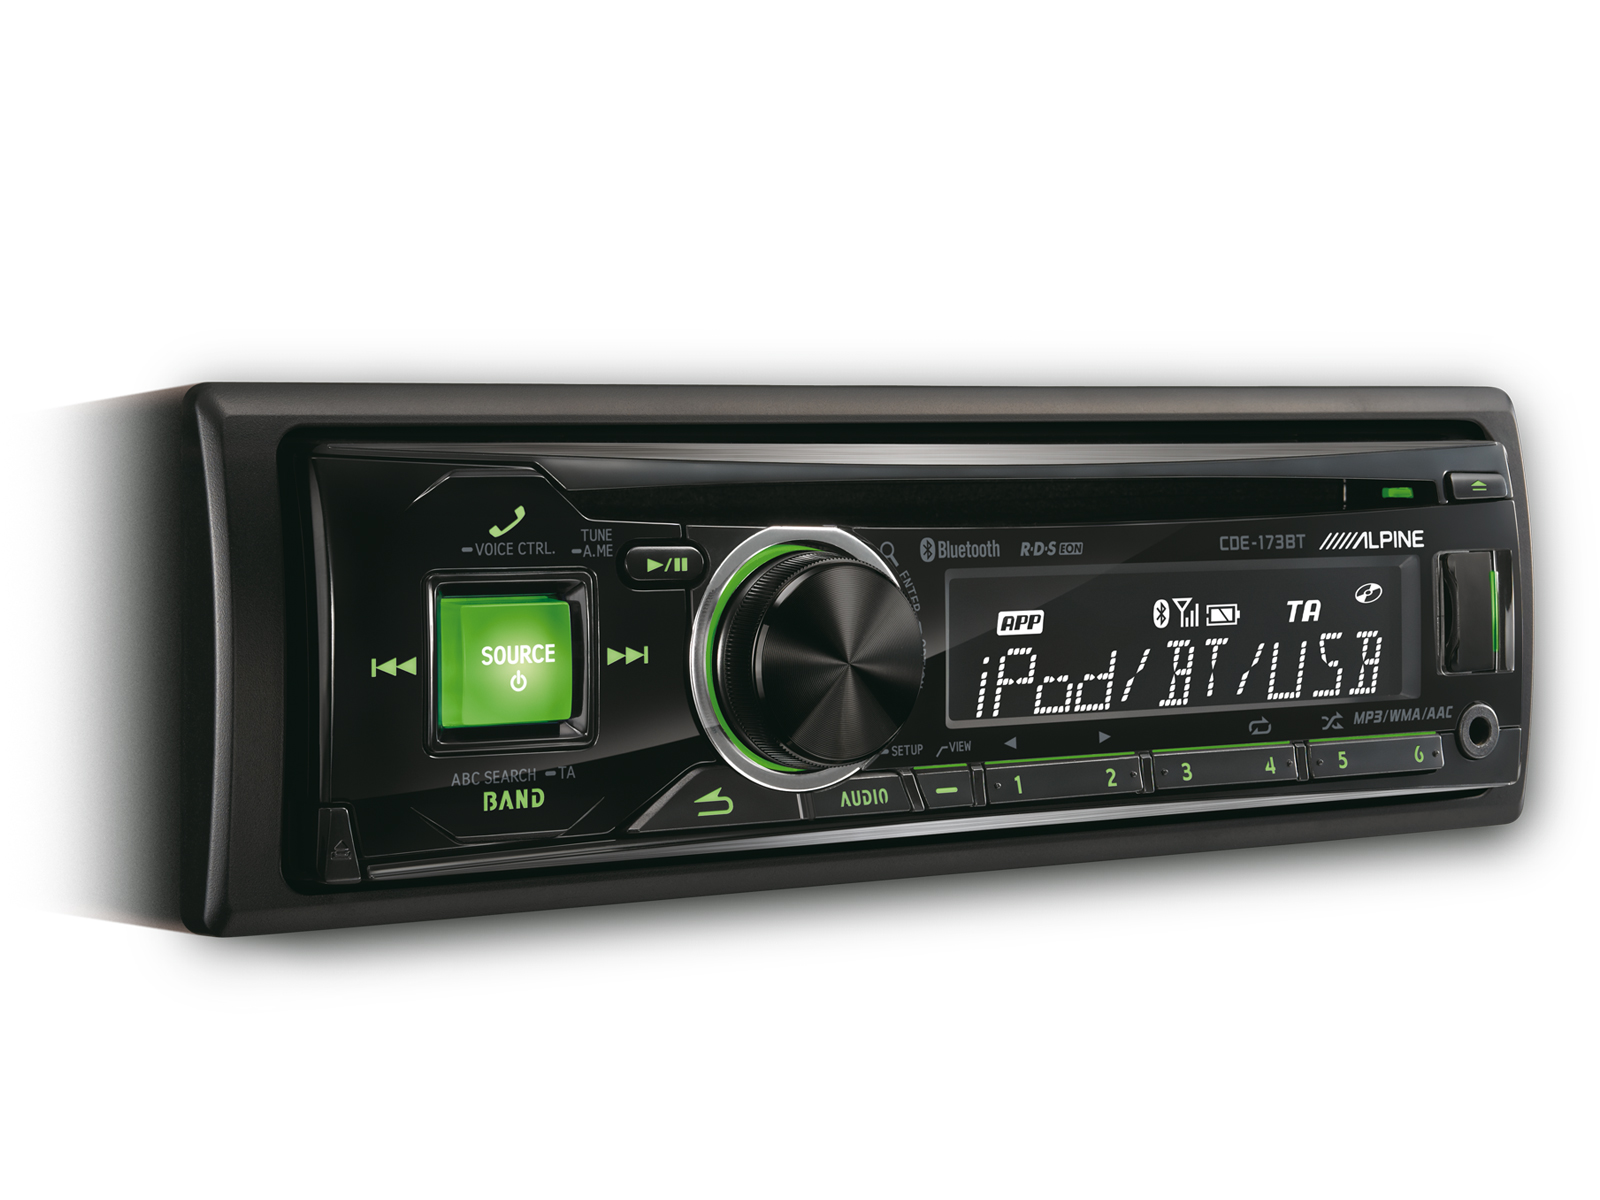 Autoradio sintolettore alpine italia cde 173bt cd fm usb aux mp3 wma